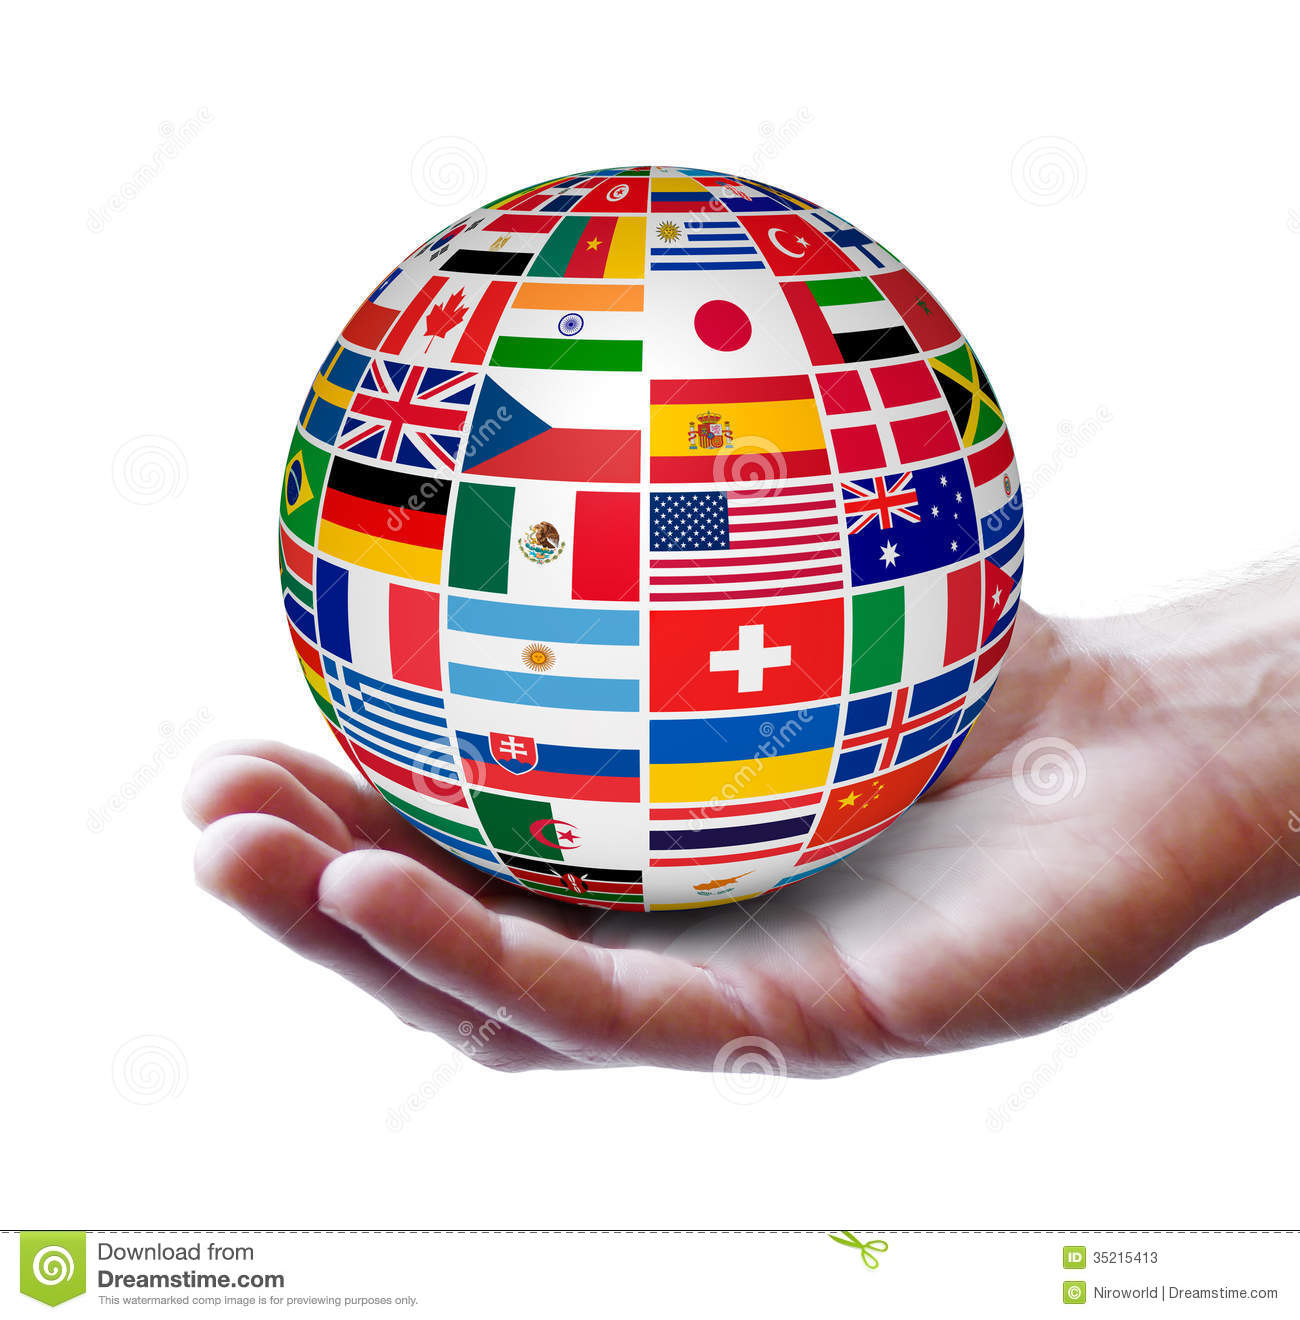 International Global Business Concept Stock Photos - Image: 35215413